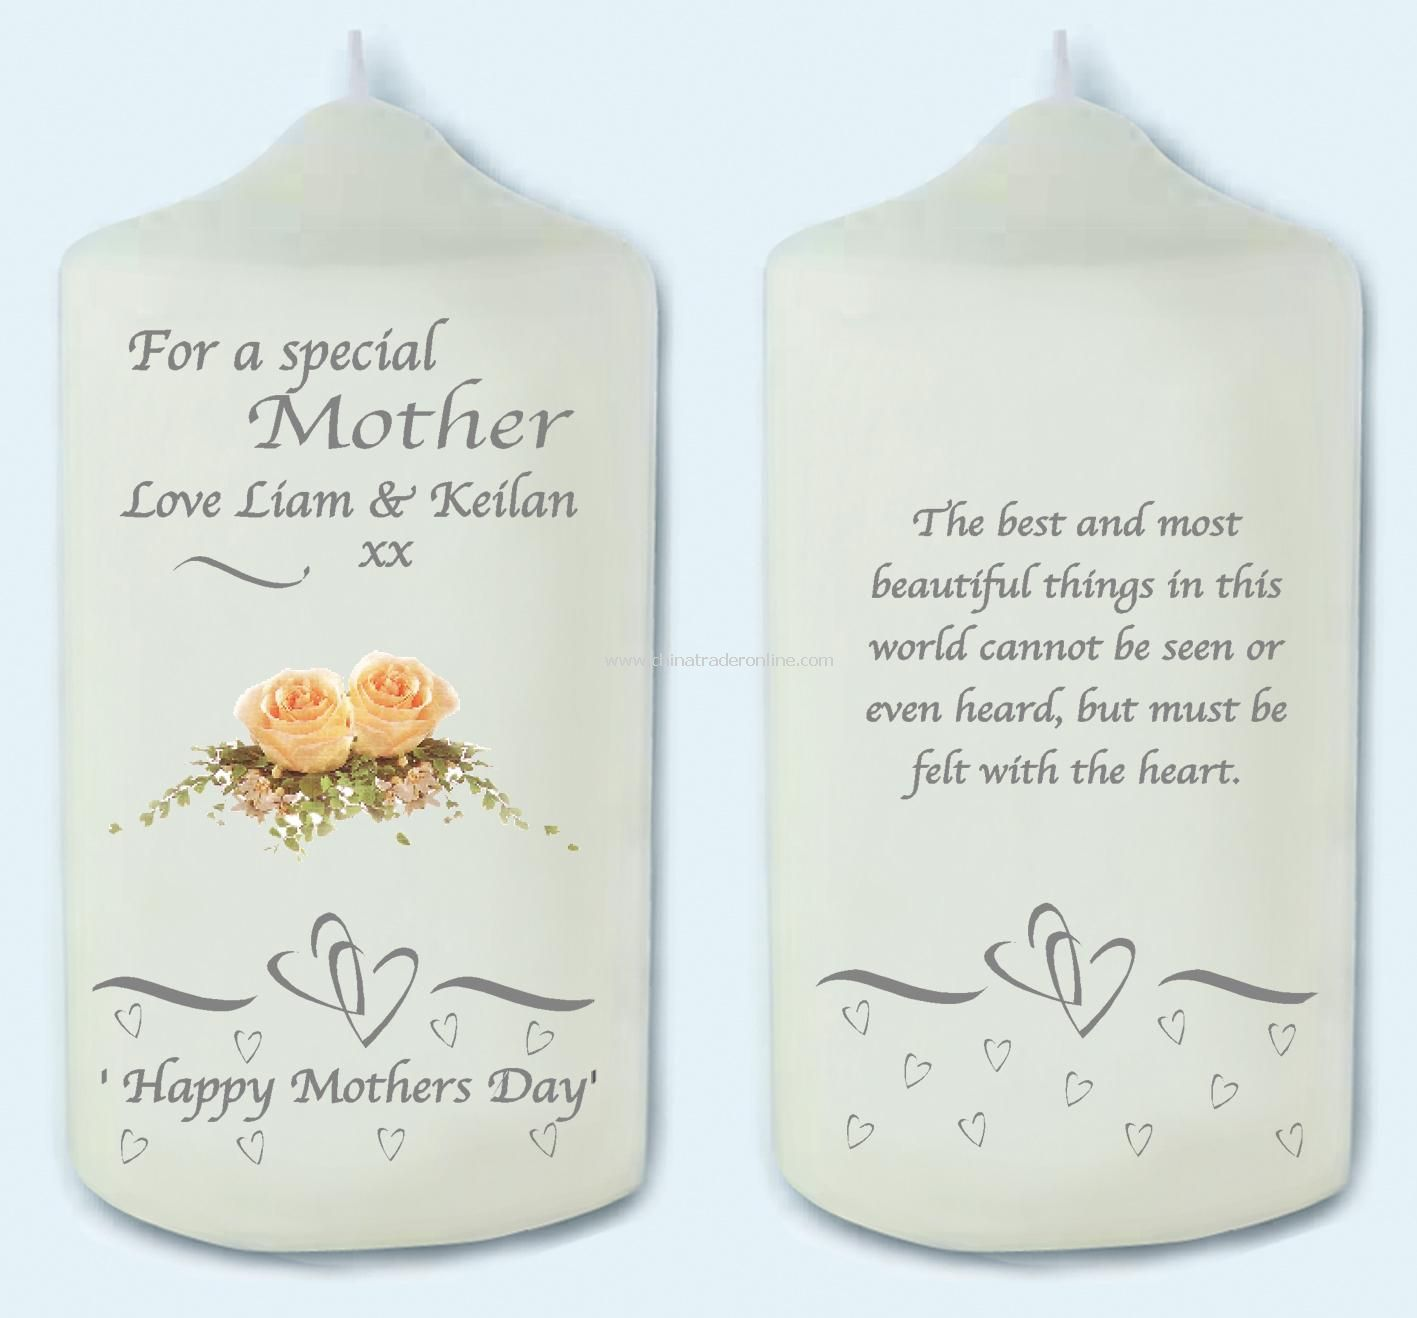 Wedding Gifts For Chinese Parents : ... Candle-buy discount Mothers Day Rose Candle made in China-CTO43606